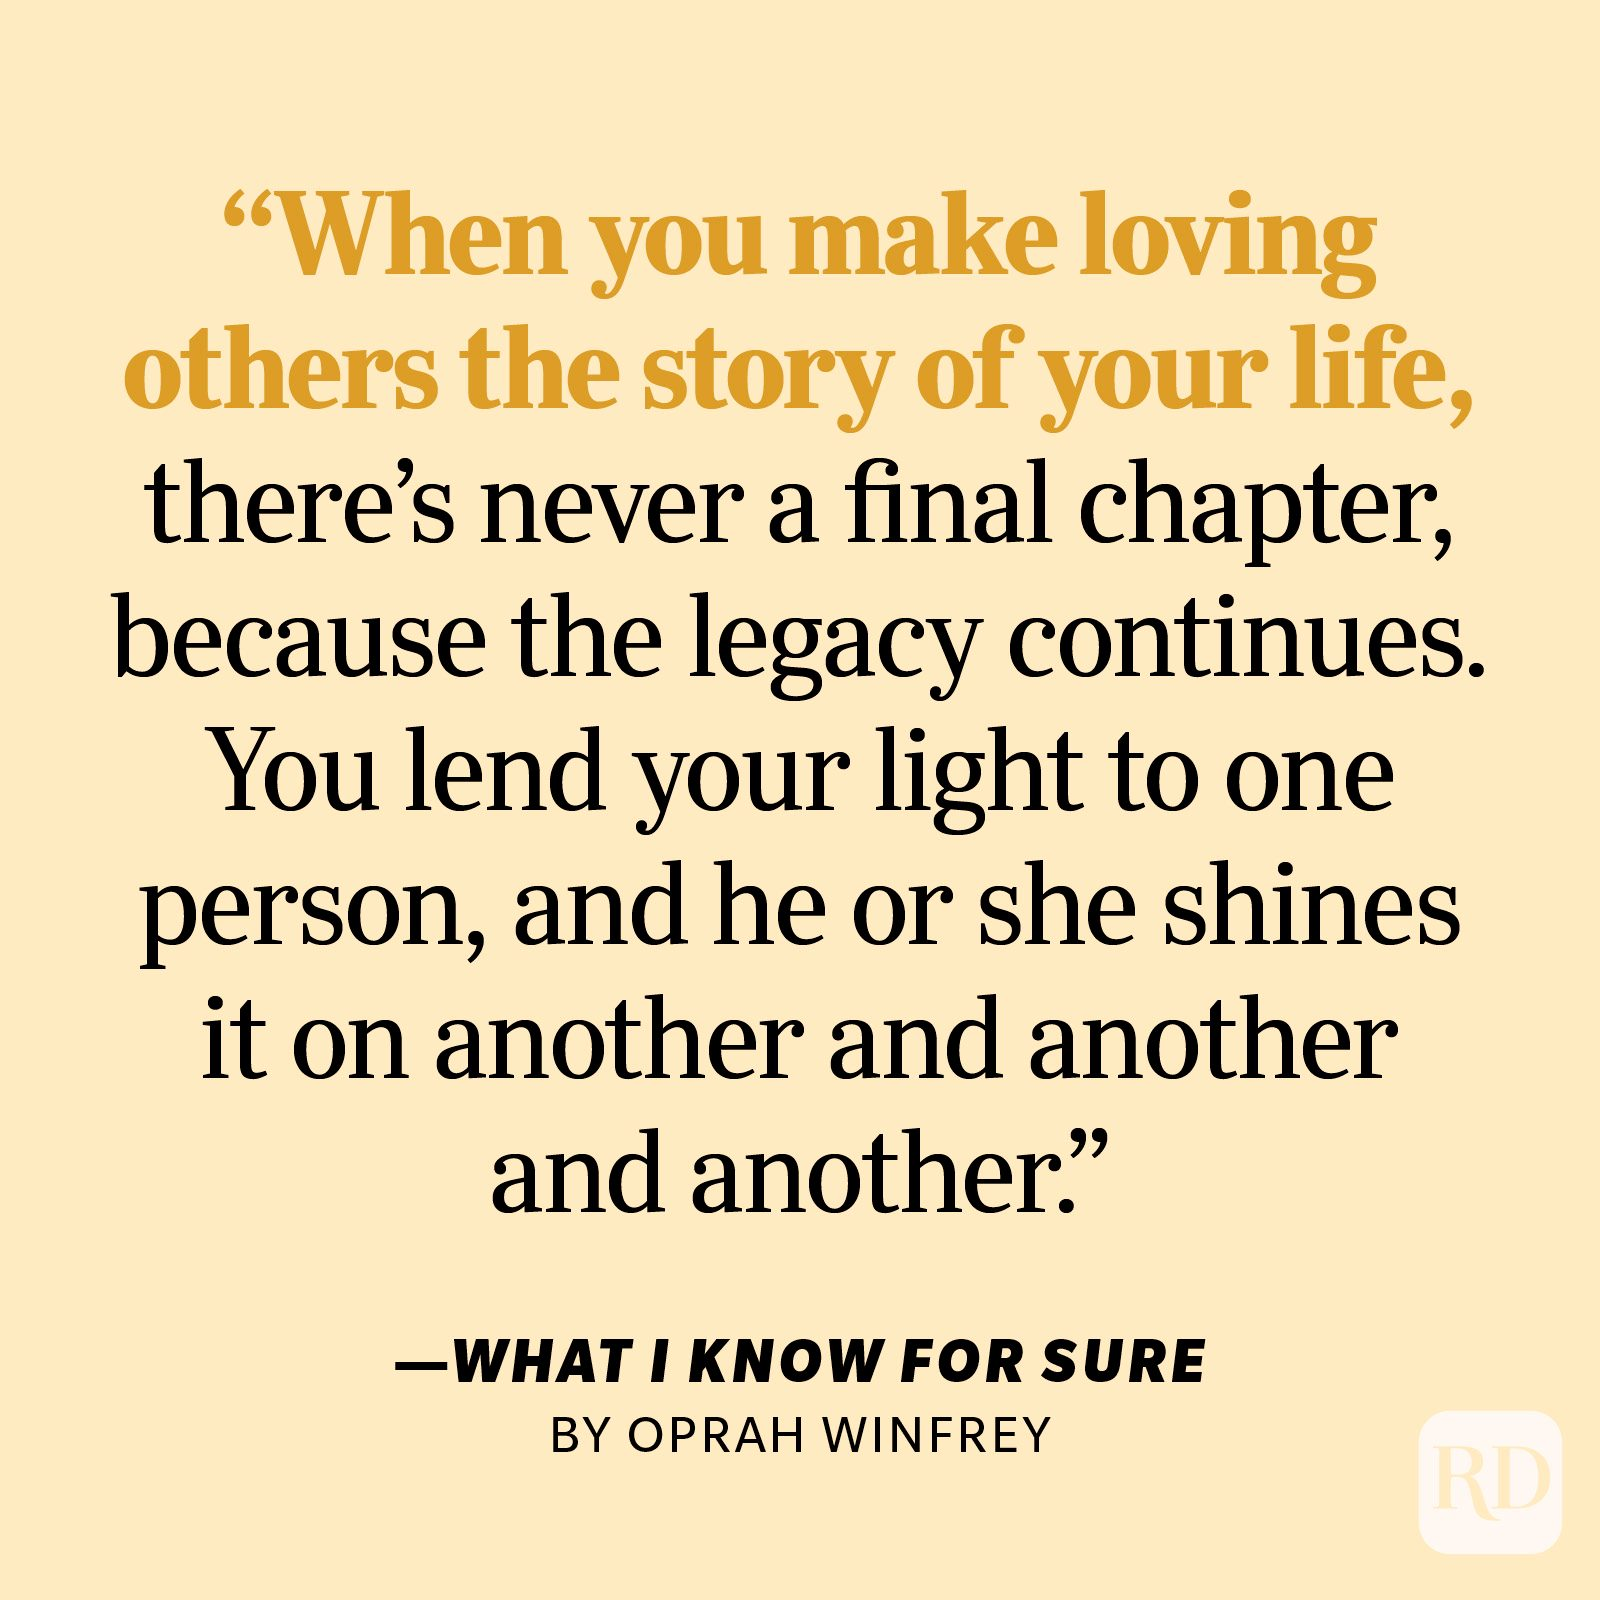 """What I Know for Sure by Oprah Winfrey """"When you make loving others the story of your life, there's never a final chapter, because the legacy continues. You lend your light to one person, and he or she shines it on another and another and another."""""""